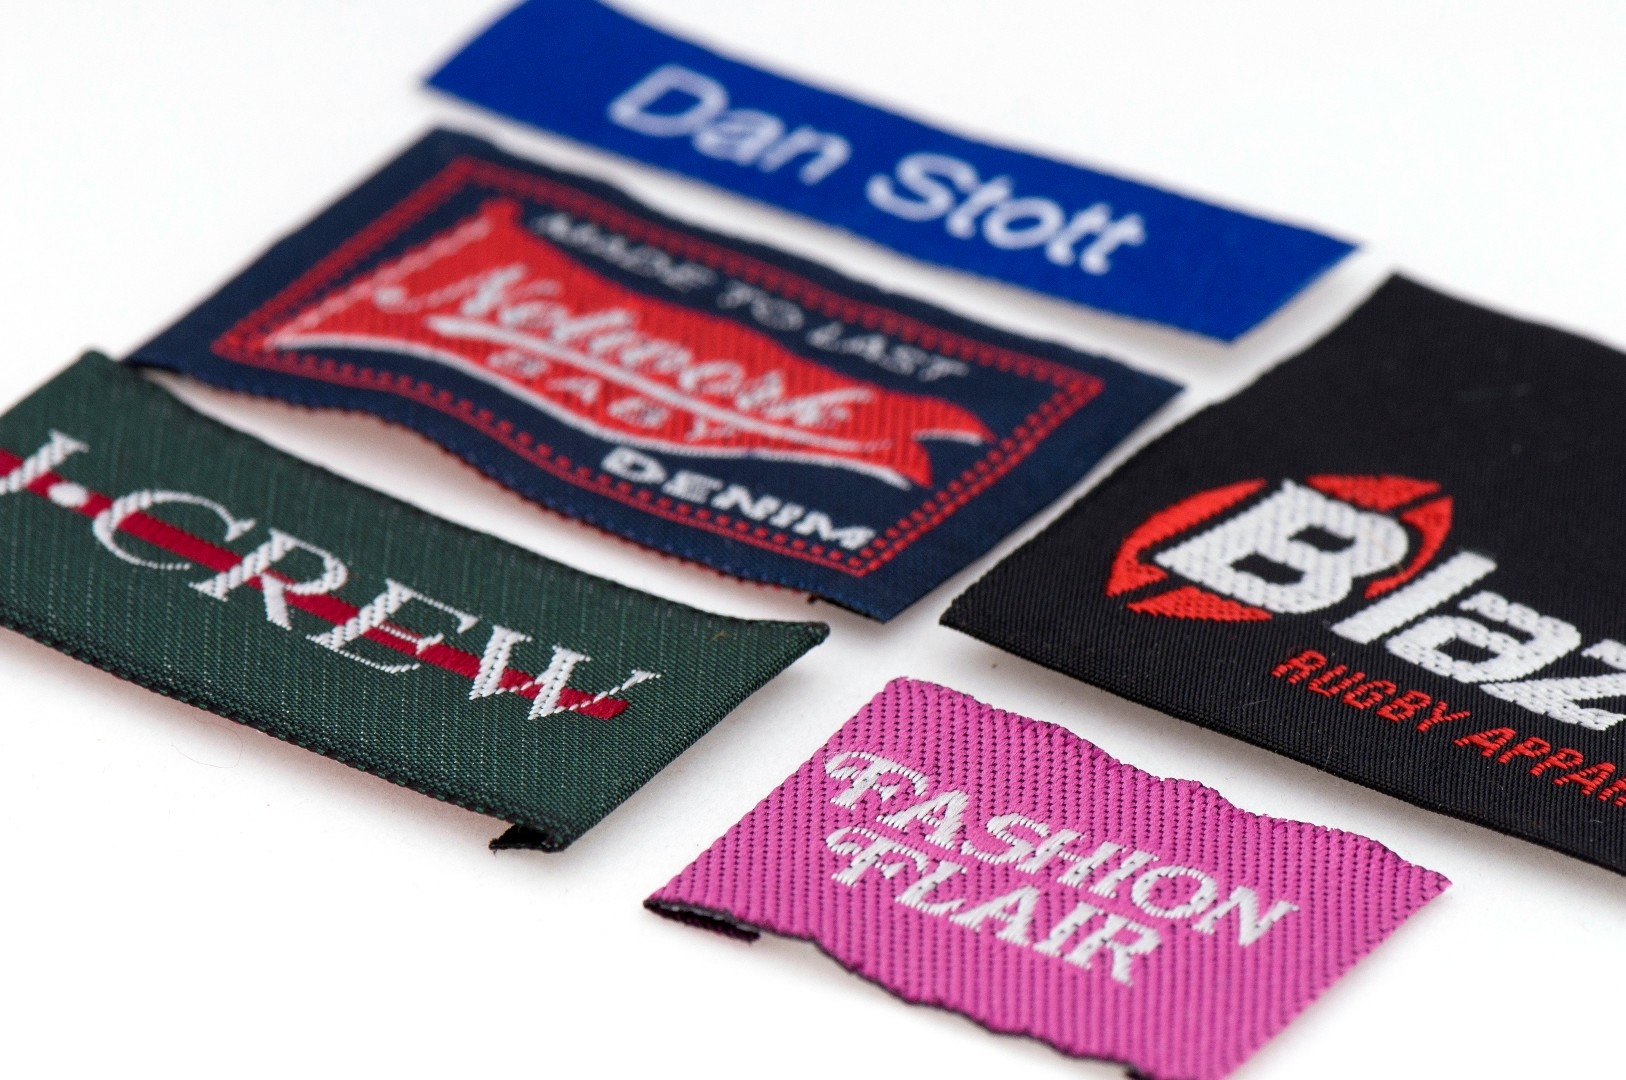 Woven name labels sew on 60mm x 10mm minimum order 1 000 units